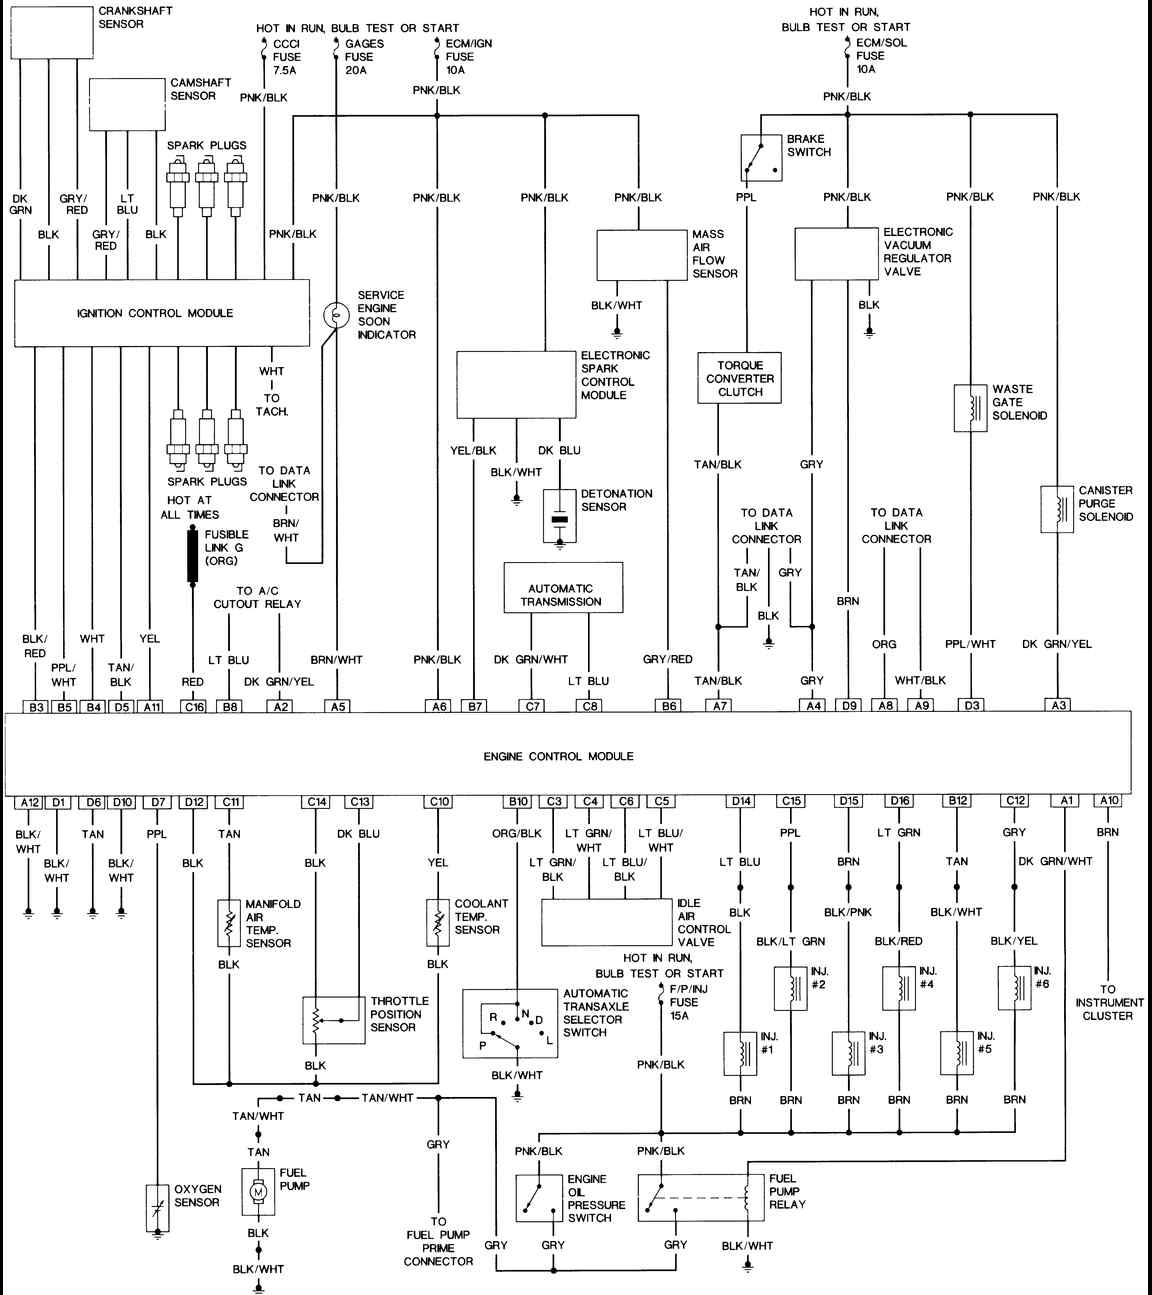 2010 08 09_144558_1987_Buick_Regal_Engine_control_wiring_V6_turbo buick wiring diagram turbo wiring diagrams instruction 1999 Buick Century Wiring-Diagram at panicattacktreatment.co